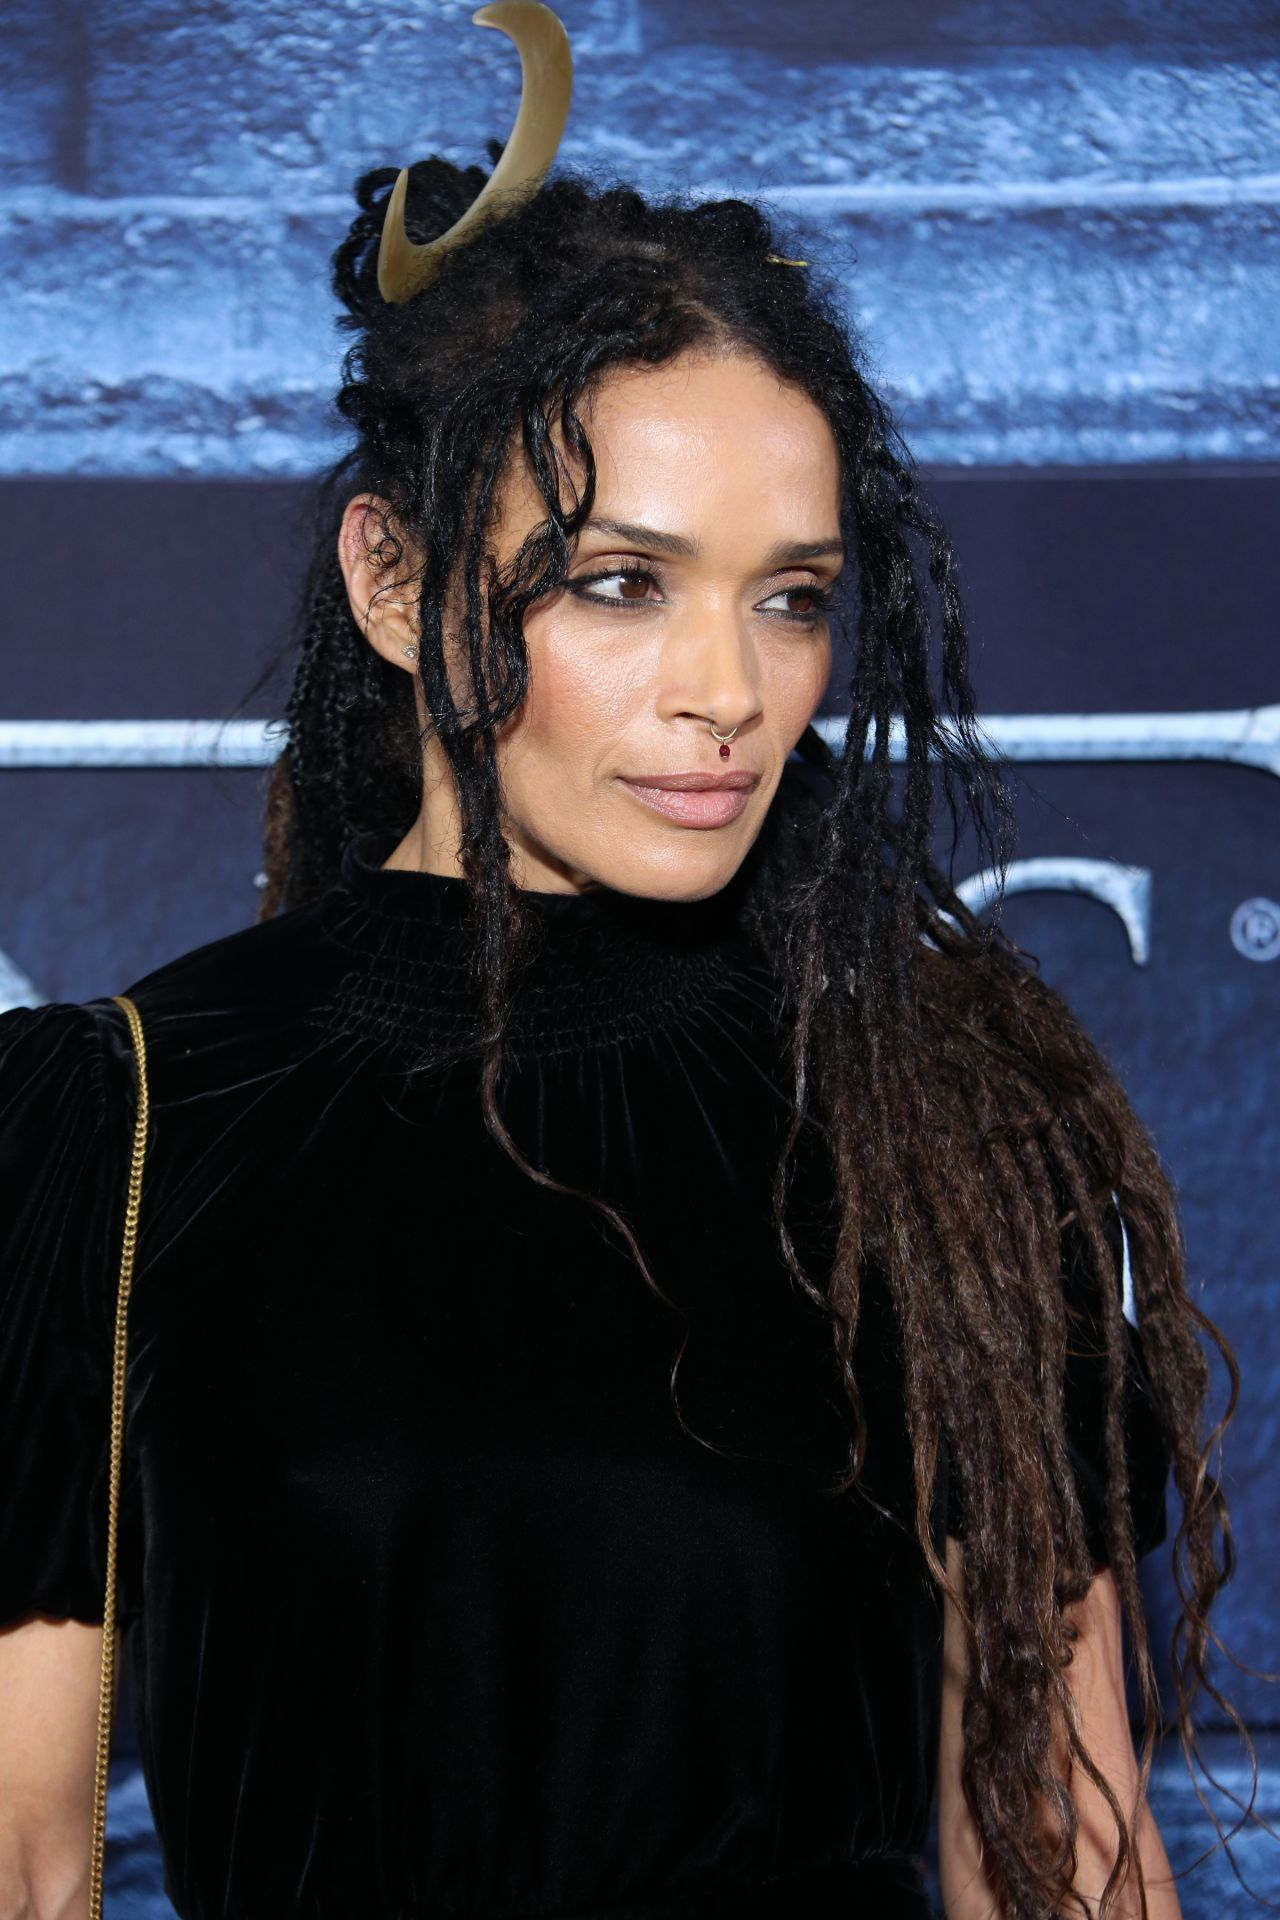 Lisa Bonet Wallpapers High Quality Download Free